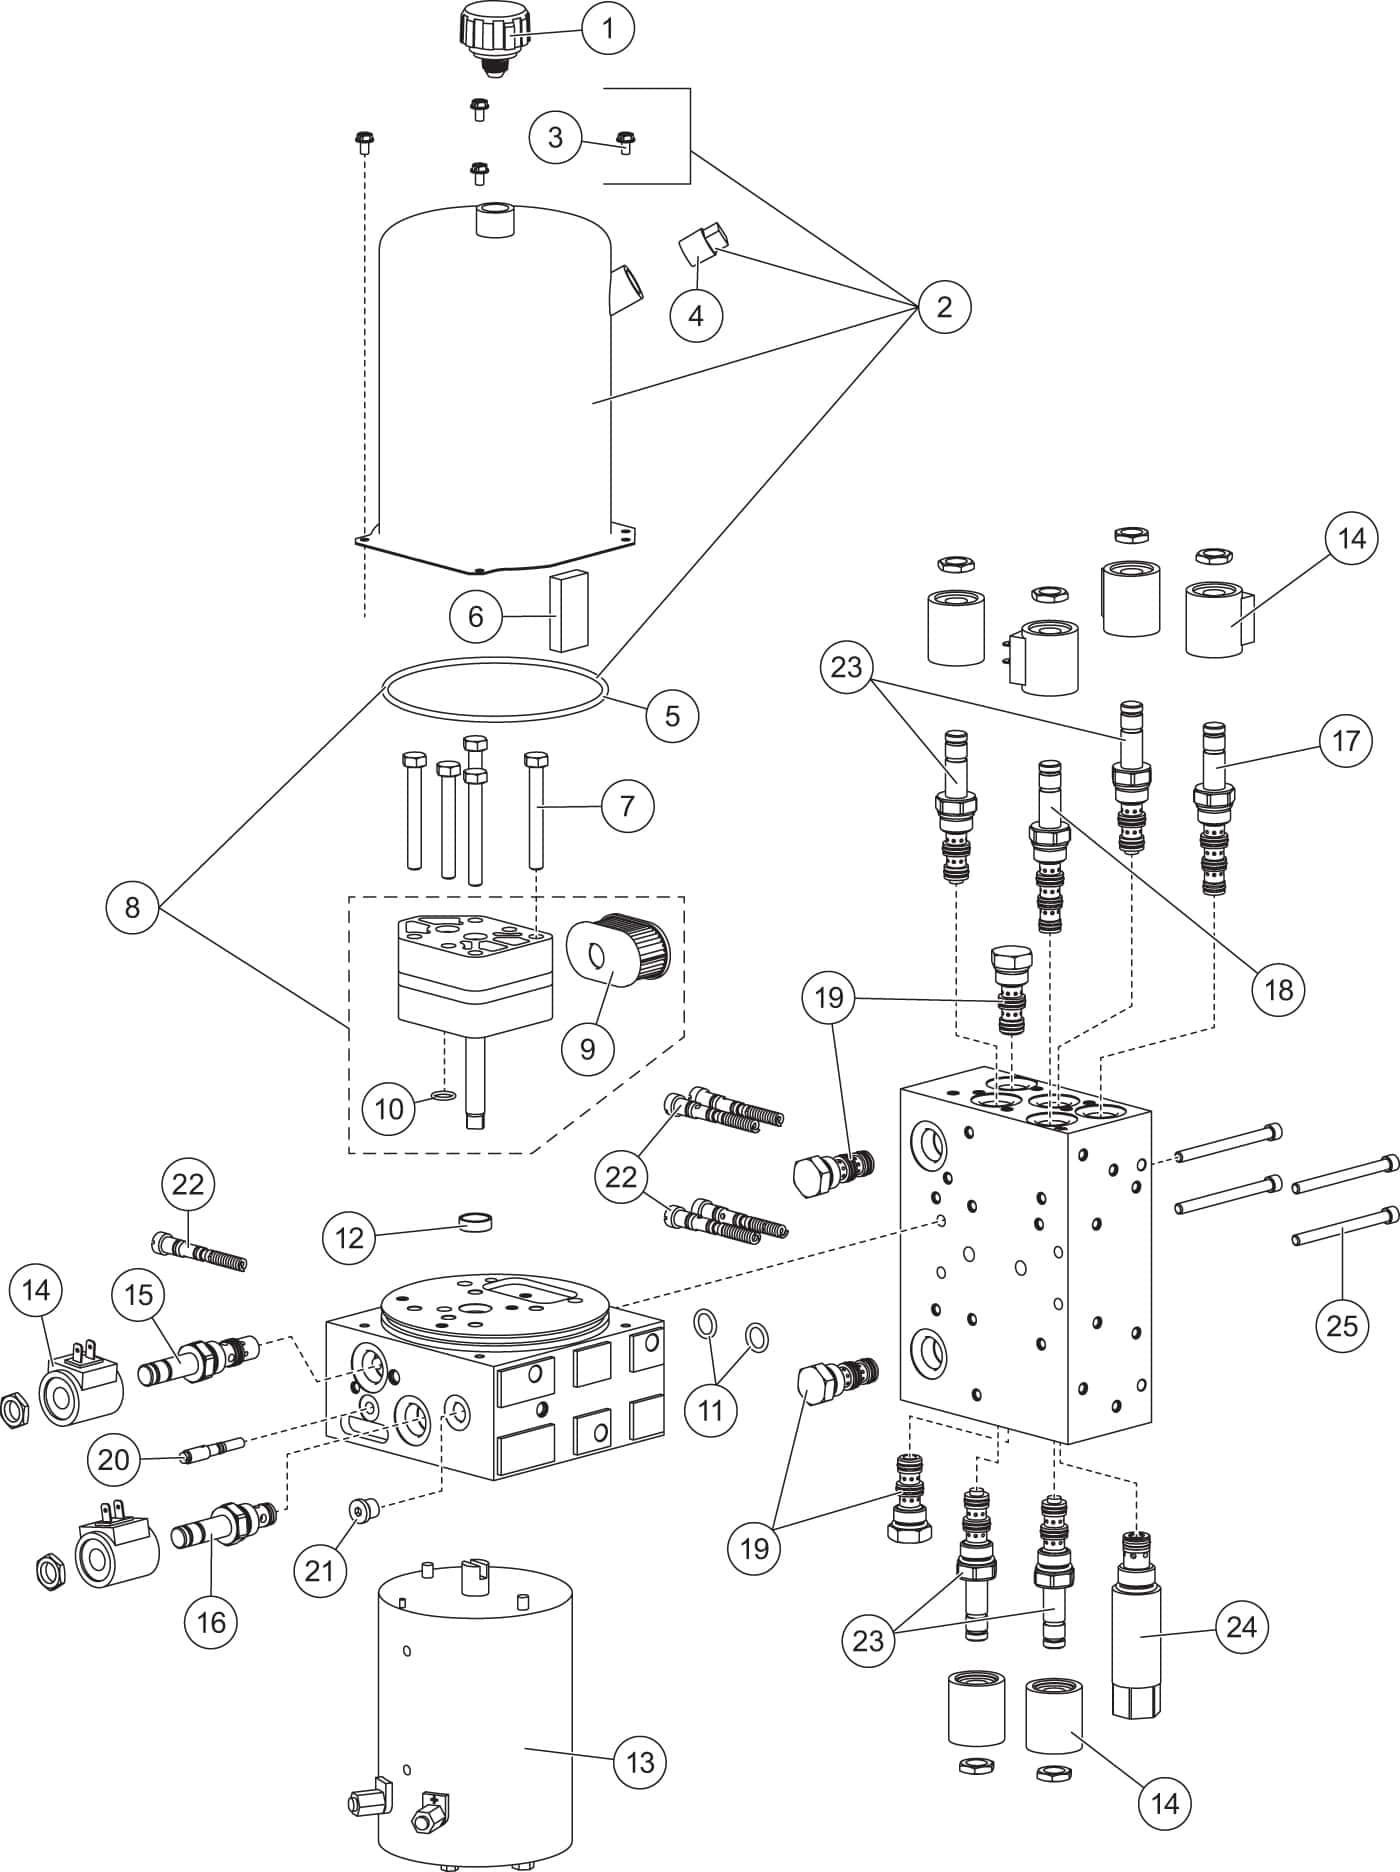 western unimount snow plow wiring diagram ford f 150